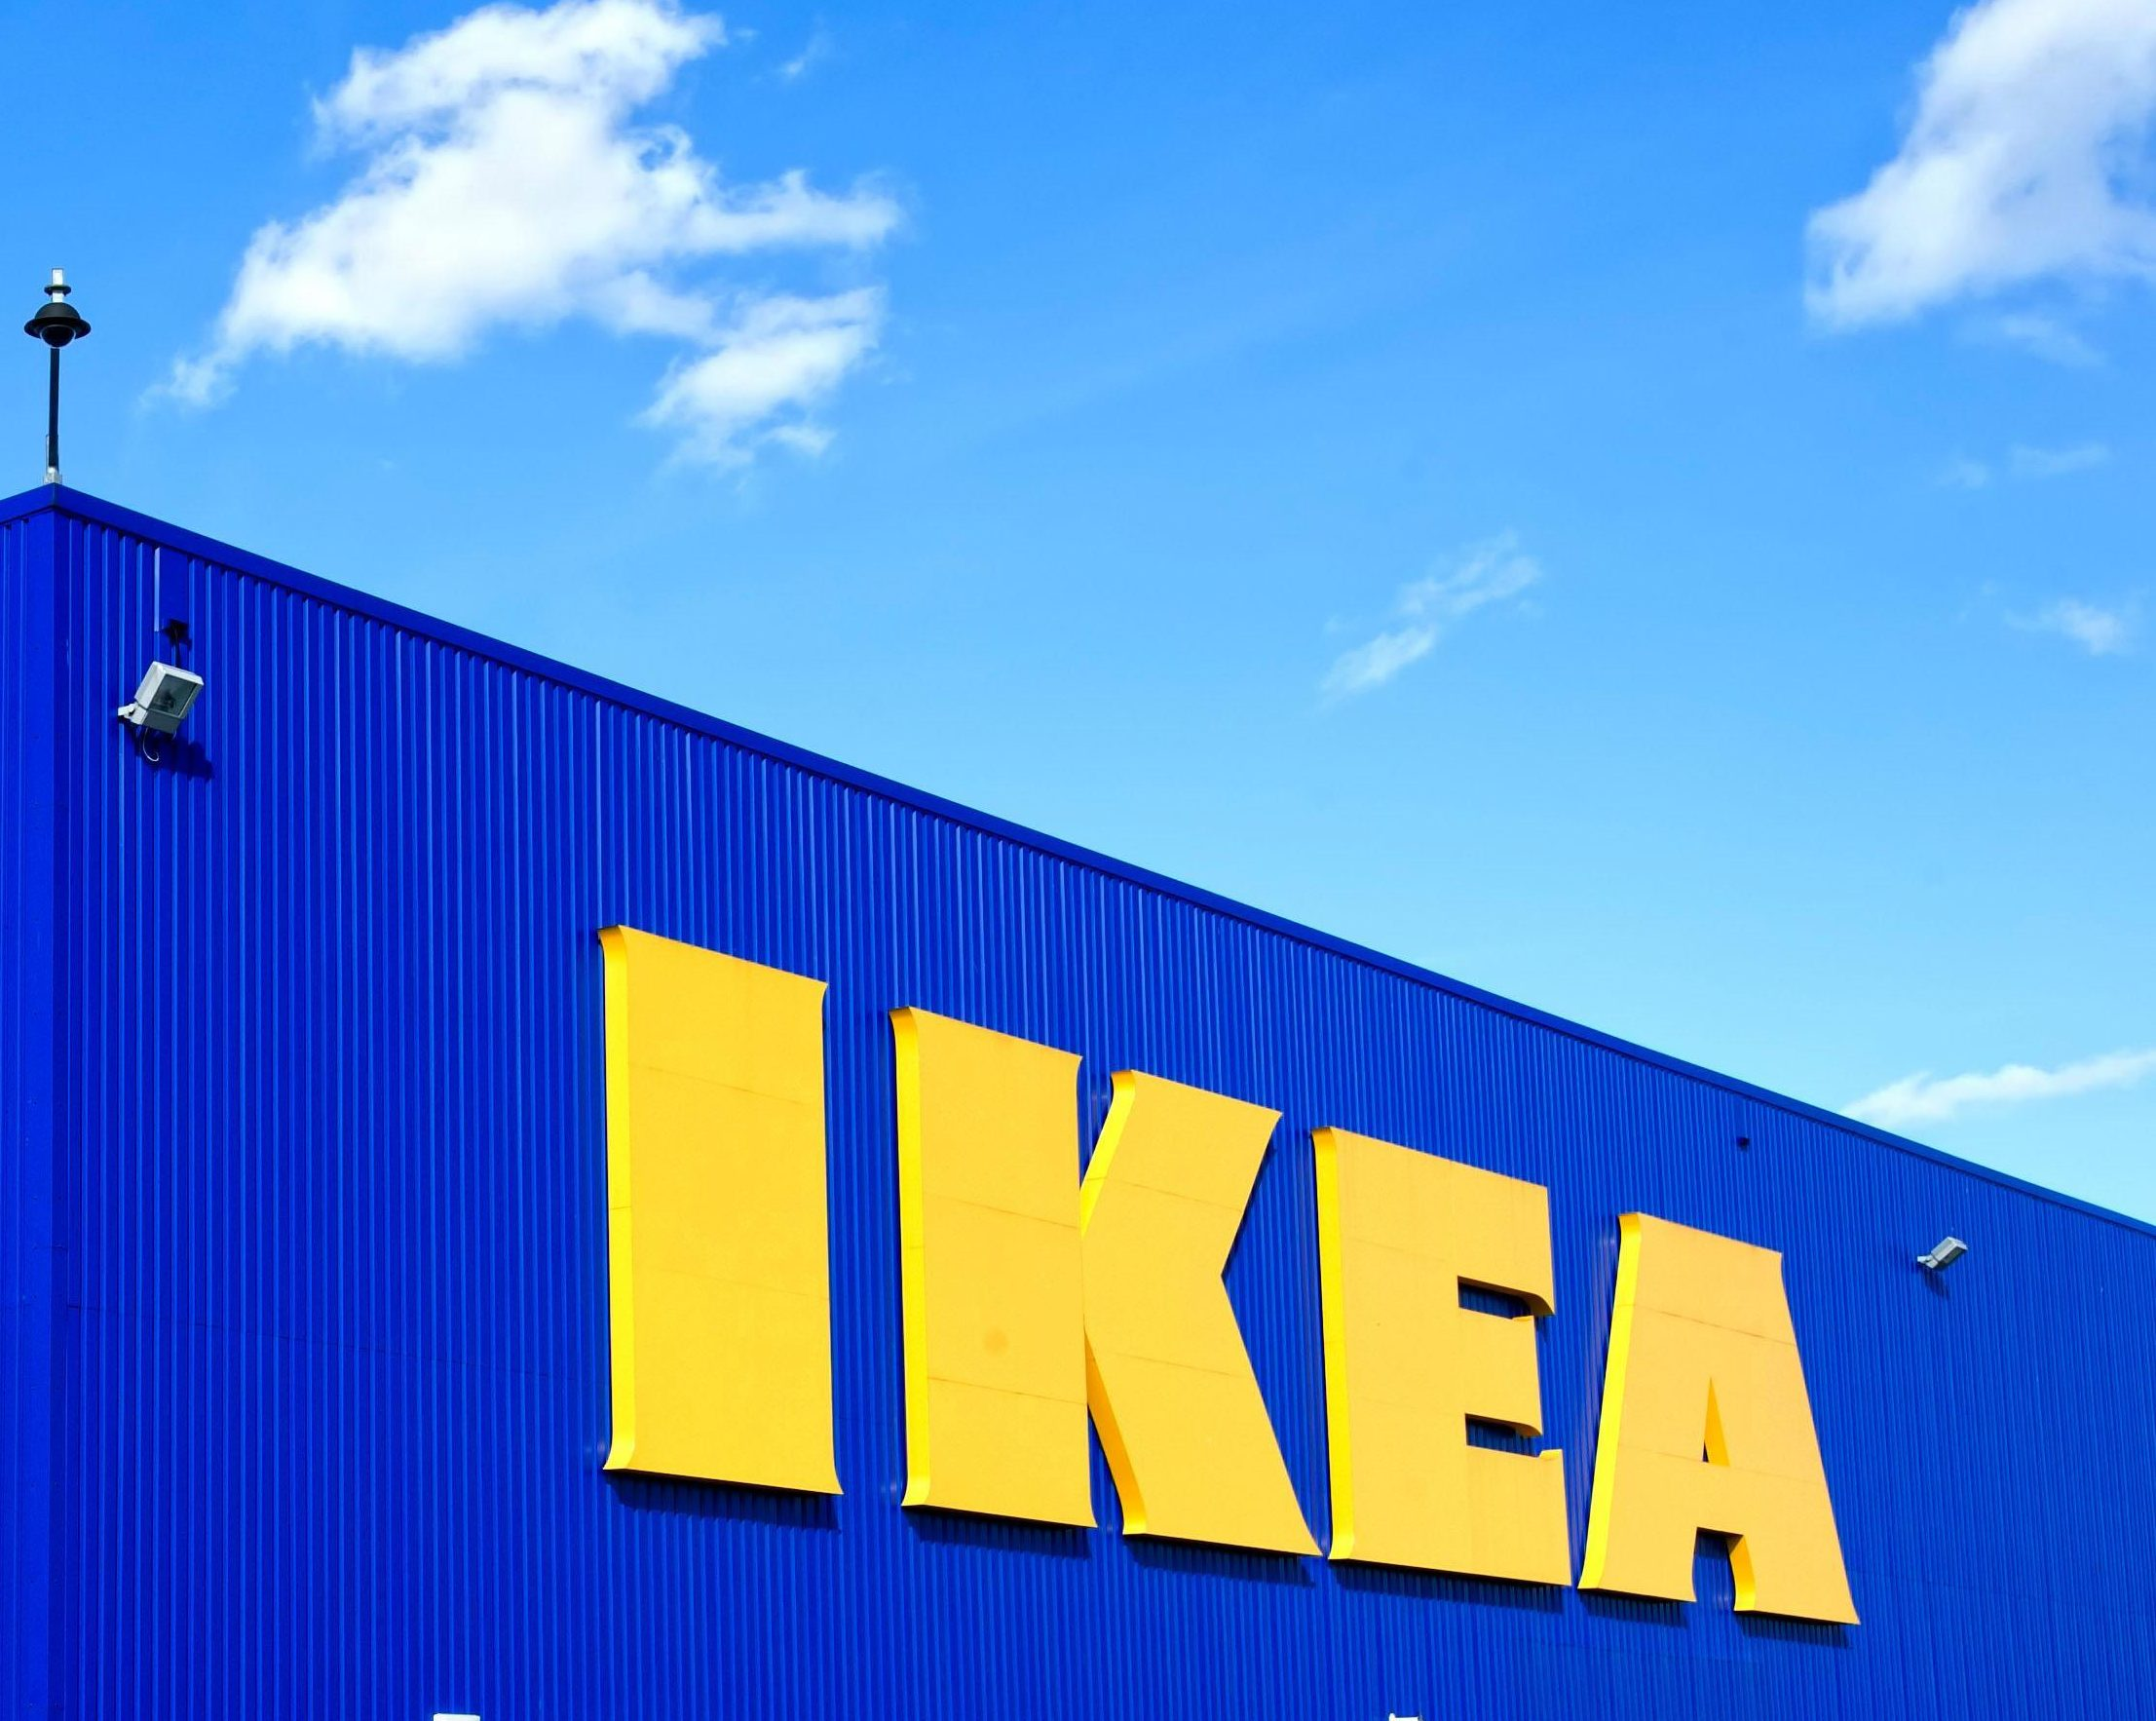 Ikea Bank Holiday Opening Times Warrington Ikea Opening And Closing Times For August Bank Holiday Monday